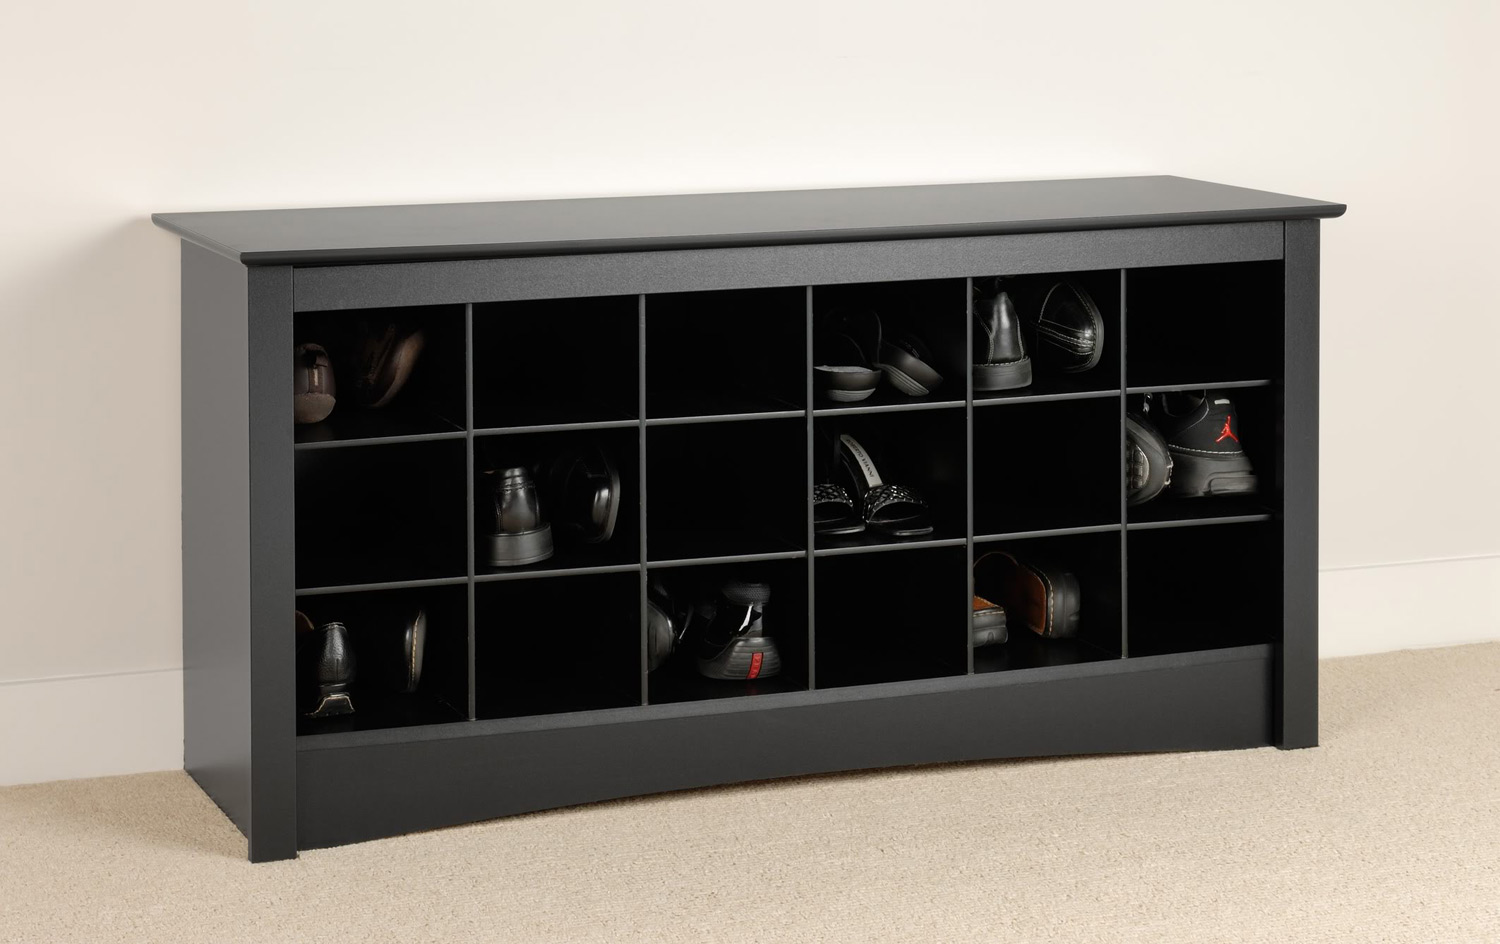 Prepac Shoe Storage Cubbie Bench Black Bss 4824 At